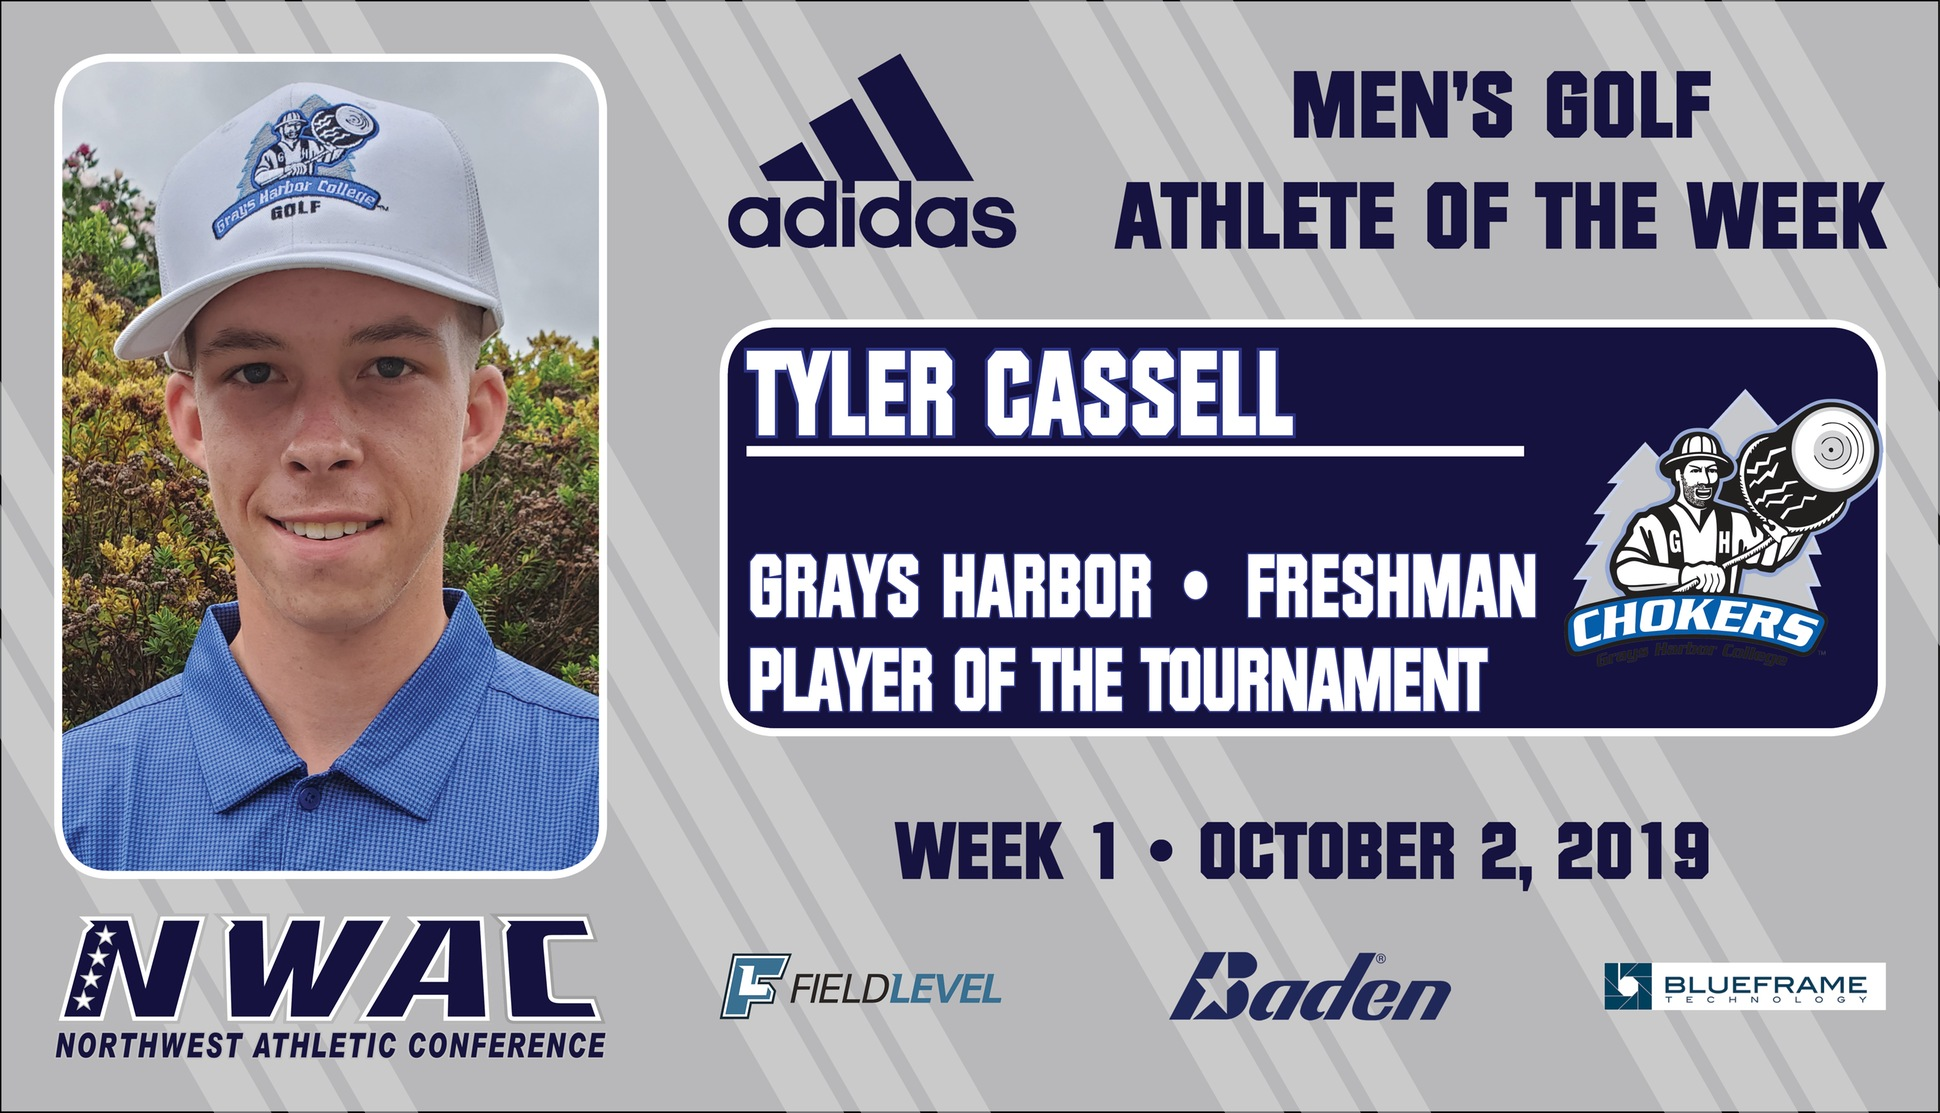 Graphic of Tyler Cassell athlete of the week